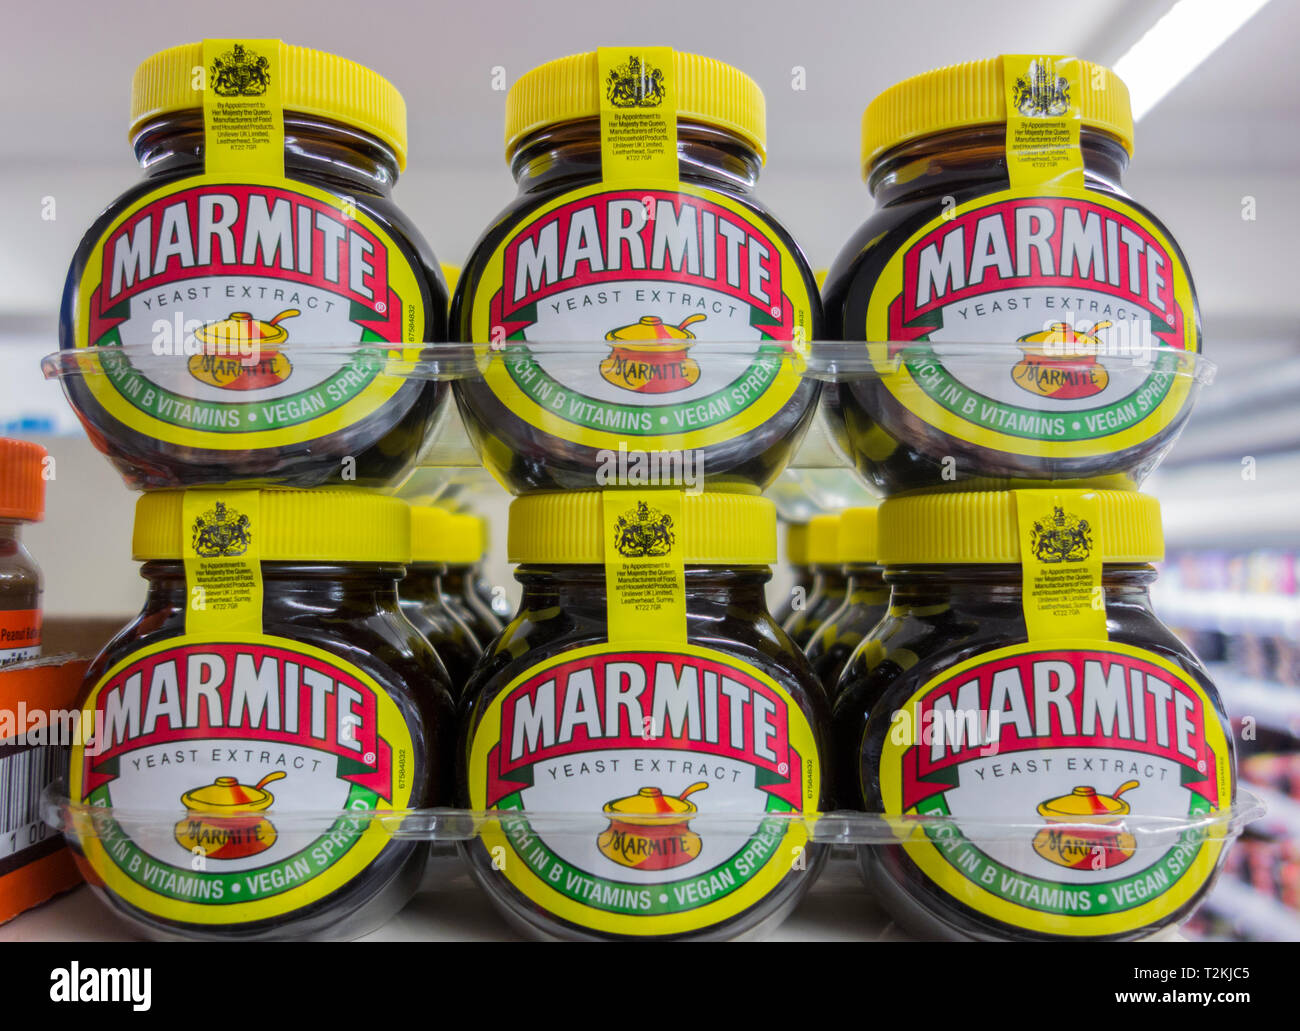 Jars of Marmite yeast extract stacked on a supermarket shelf in London, UK - Stock Image